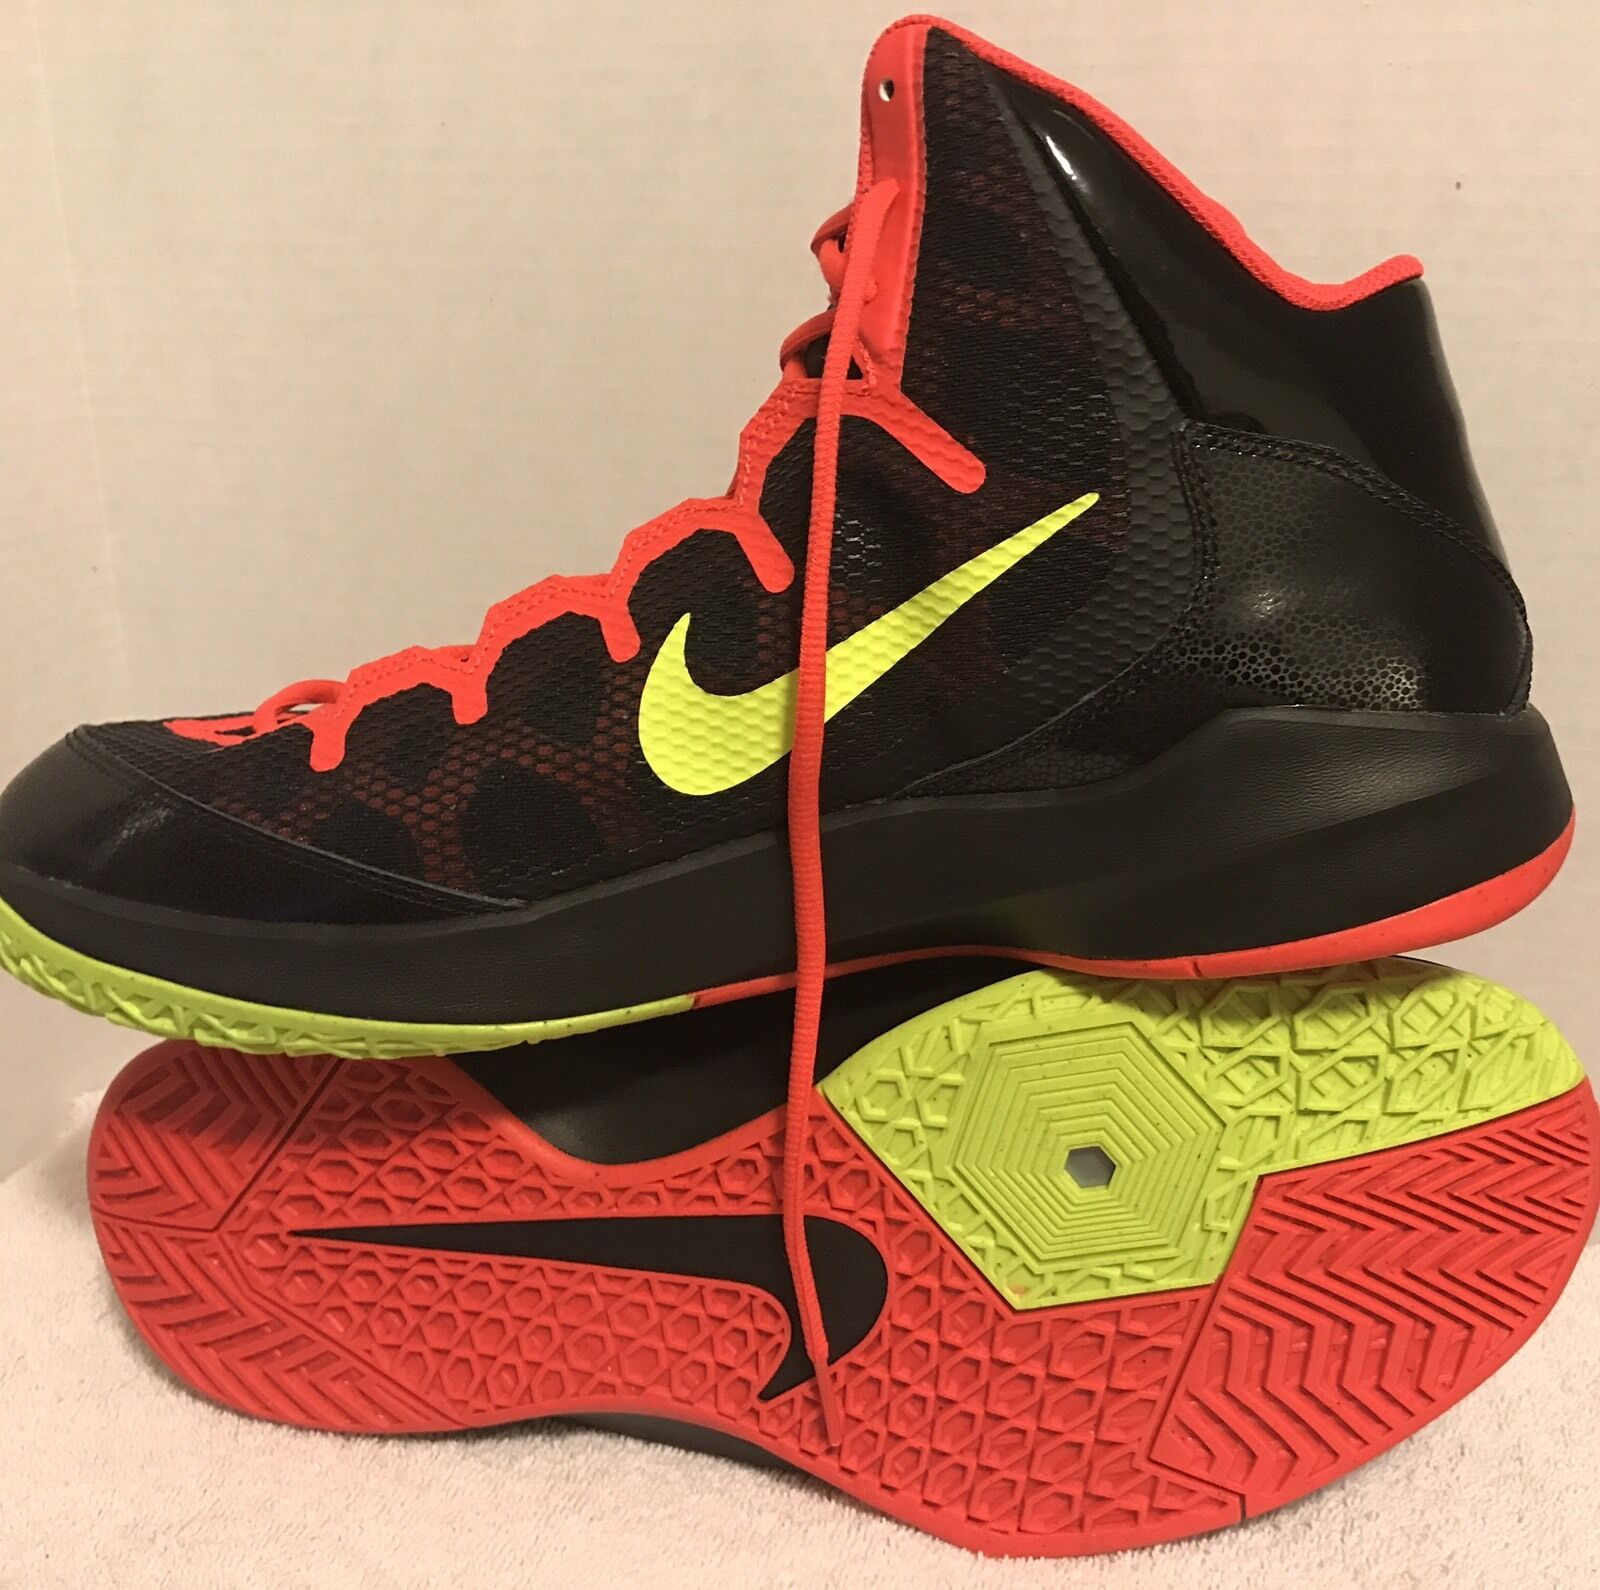 Nike Zoom Hi Top Basketball Trainers 749432 001 Sneakers Shoes